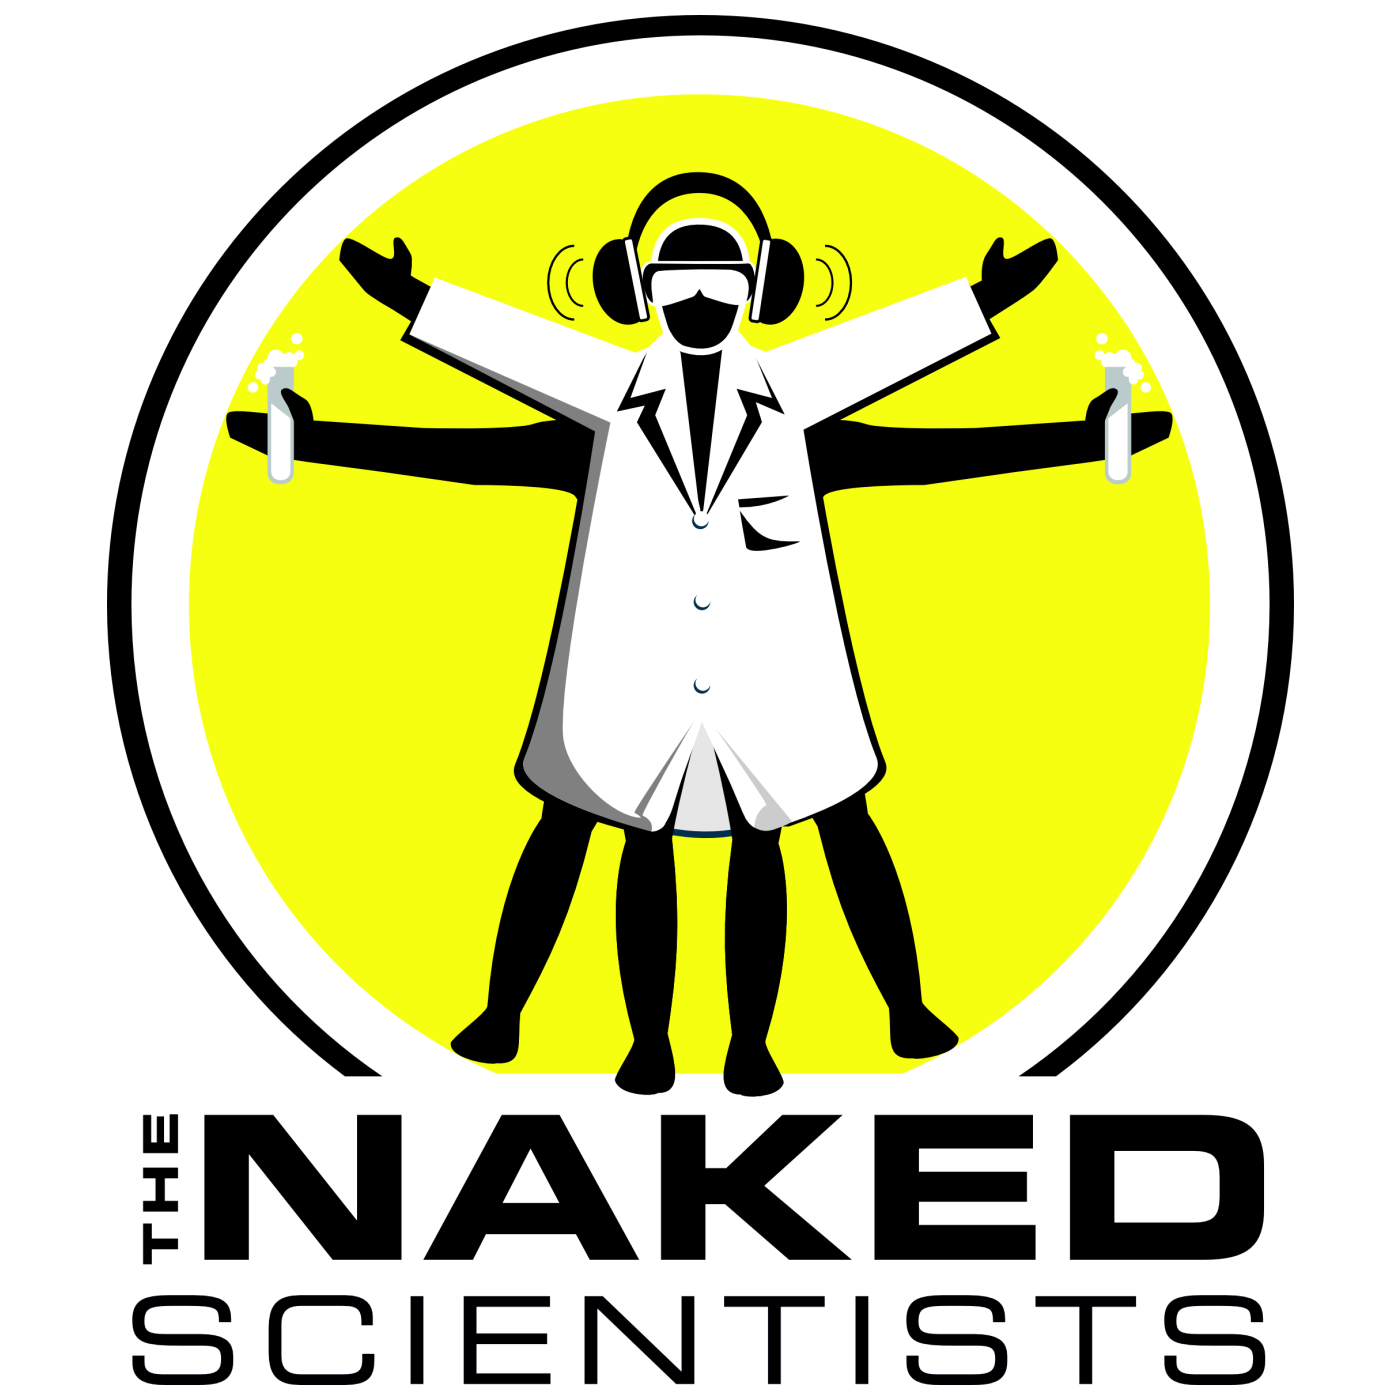 - The Naked Scientists Podcast - Stripping Down Science